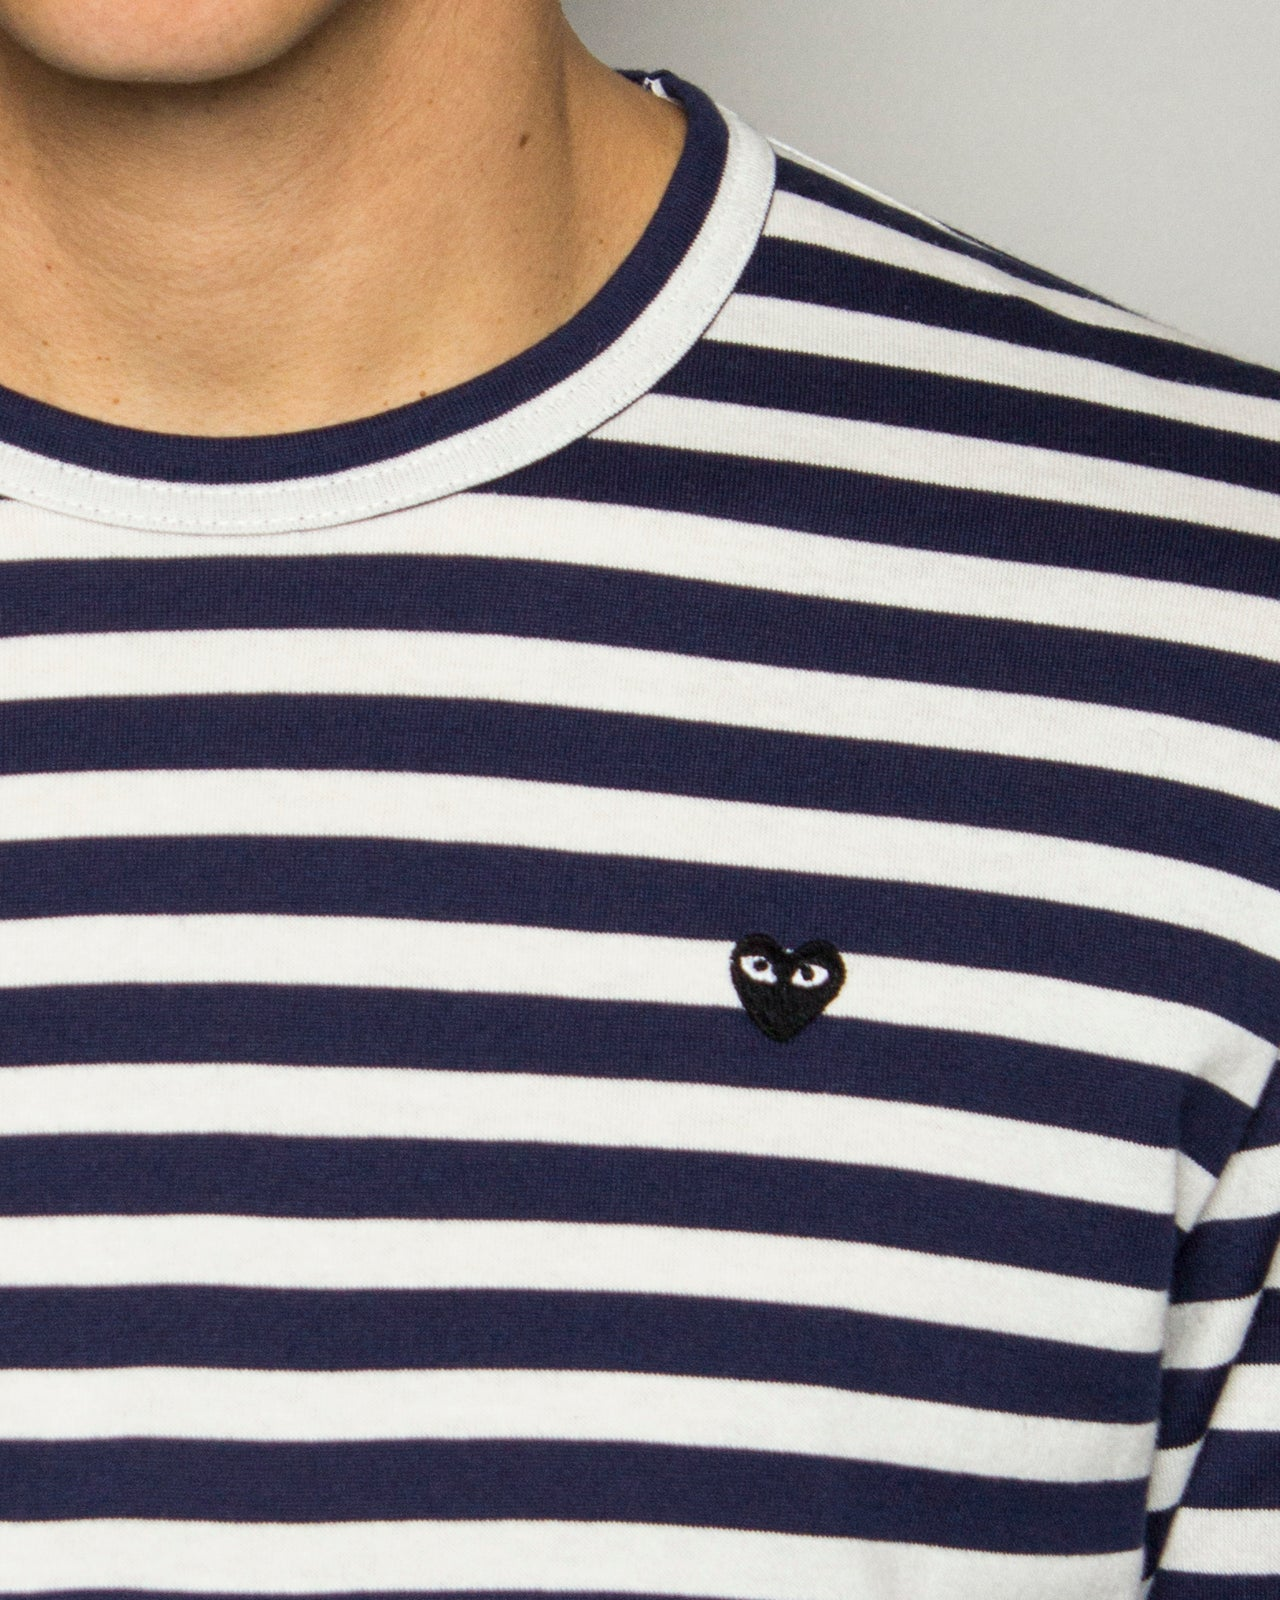 PLAY Striped Black Heart LS Navy/White